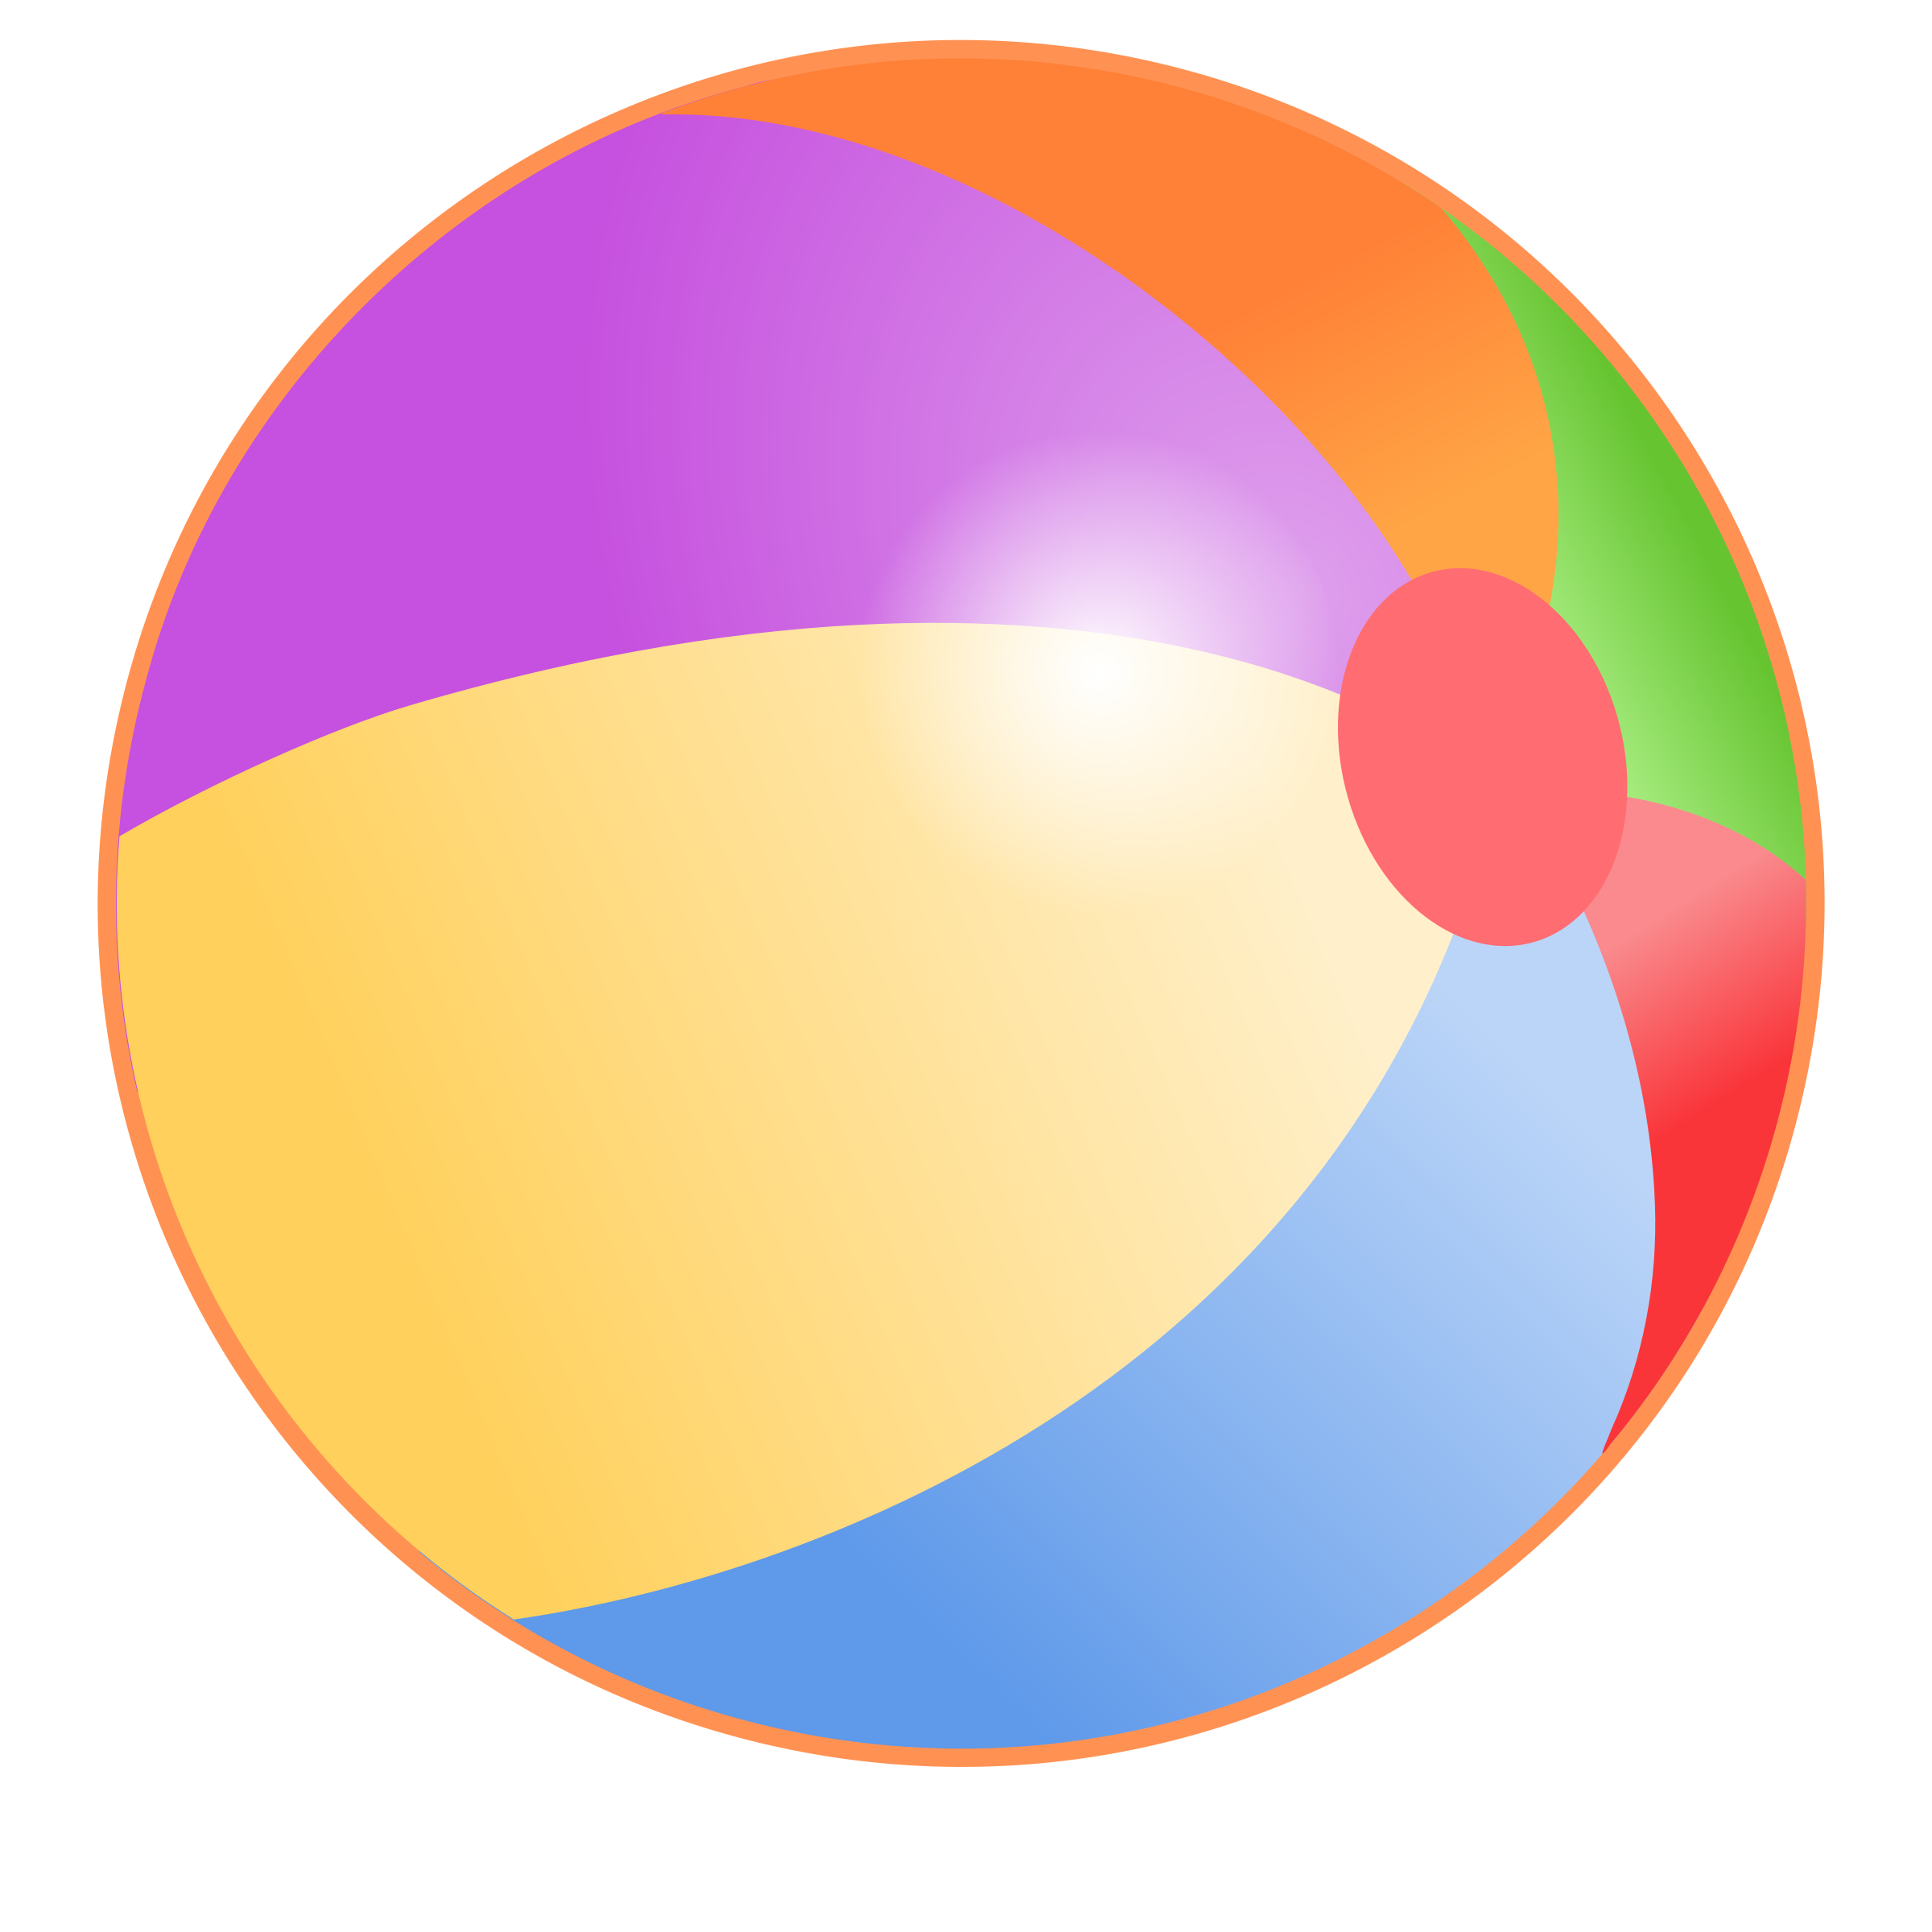 Swimming pool ball png. Beach picture image bildites